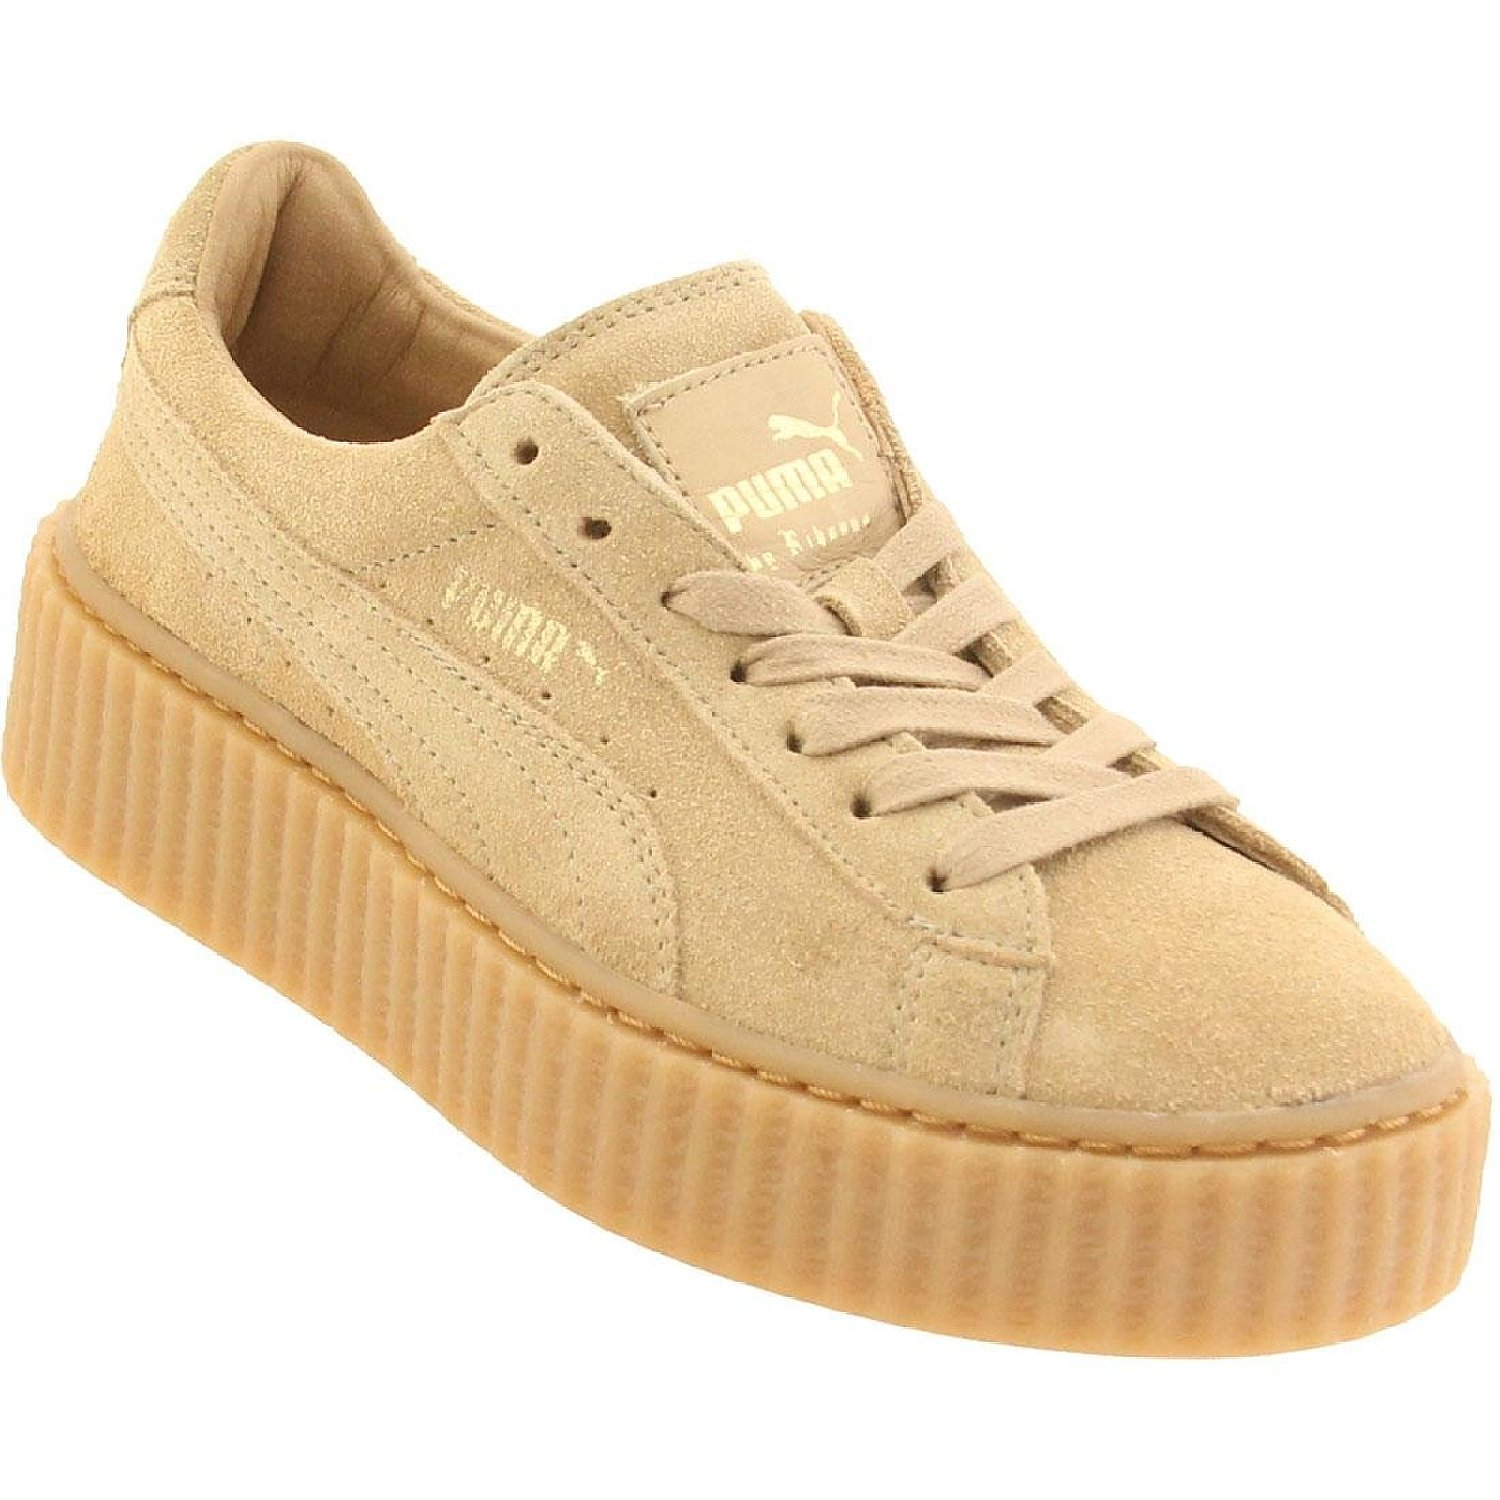 puma x rihanna women suede creepers shoes. Black Bedroom Furniture Sets. Home Design Ideas